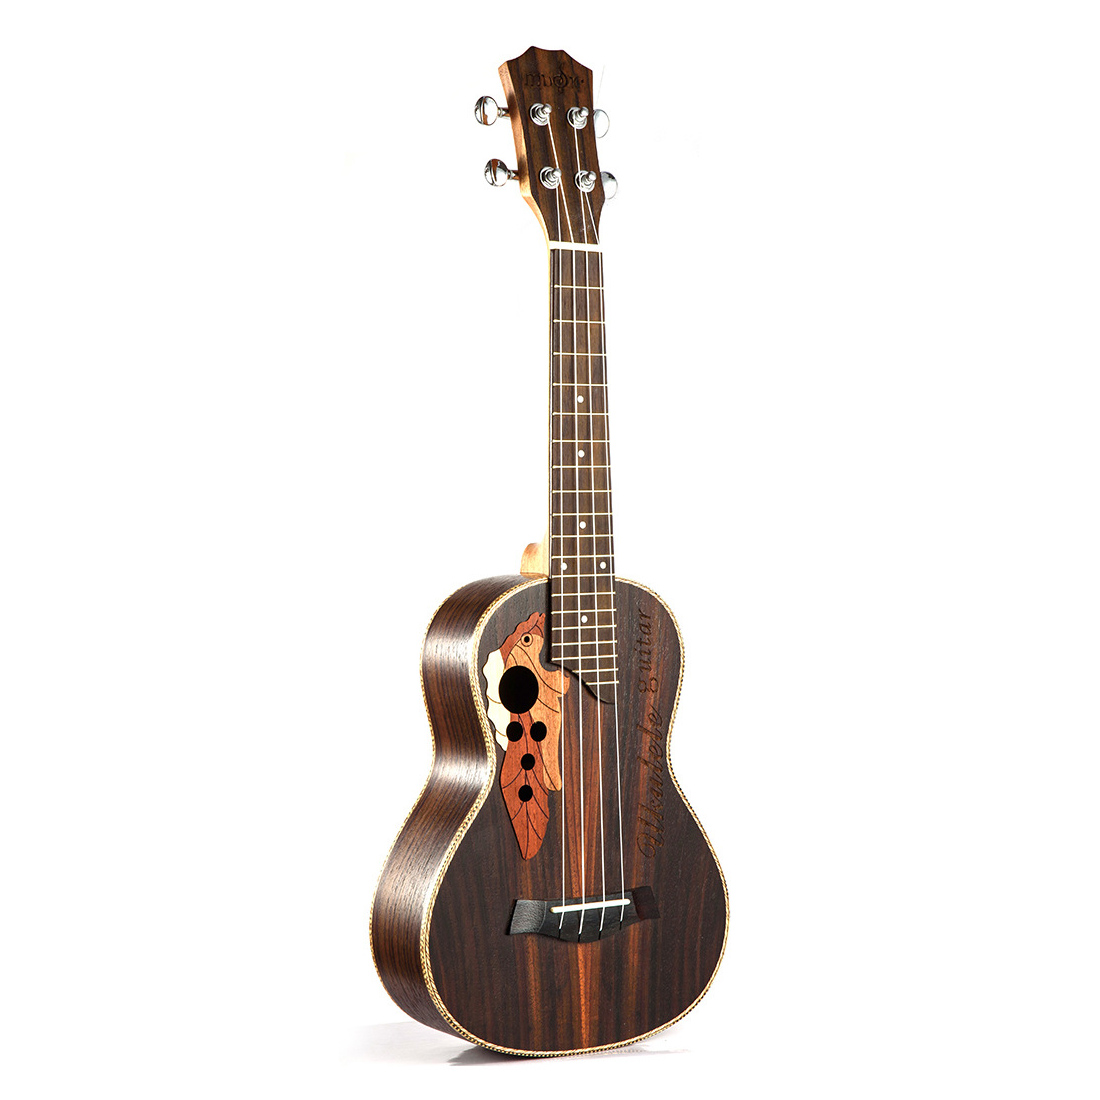 HLBY Soprano Concert Ukulele 23 inch rosewood uku Ukelele with 4 String mini Hawaii guitar Musical Instruments zebra 23 inch black rosewood fingerboard concert ukulele sapele hawaii ukelele guitarra bass guitar for musical instruments